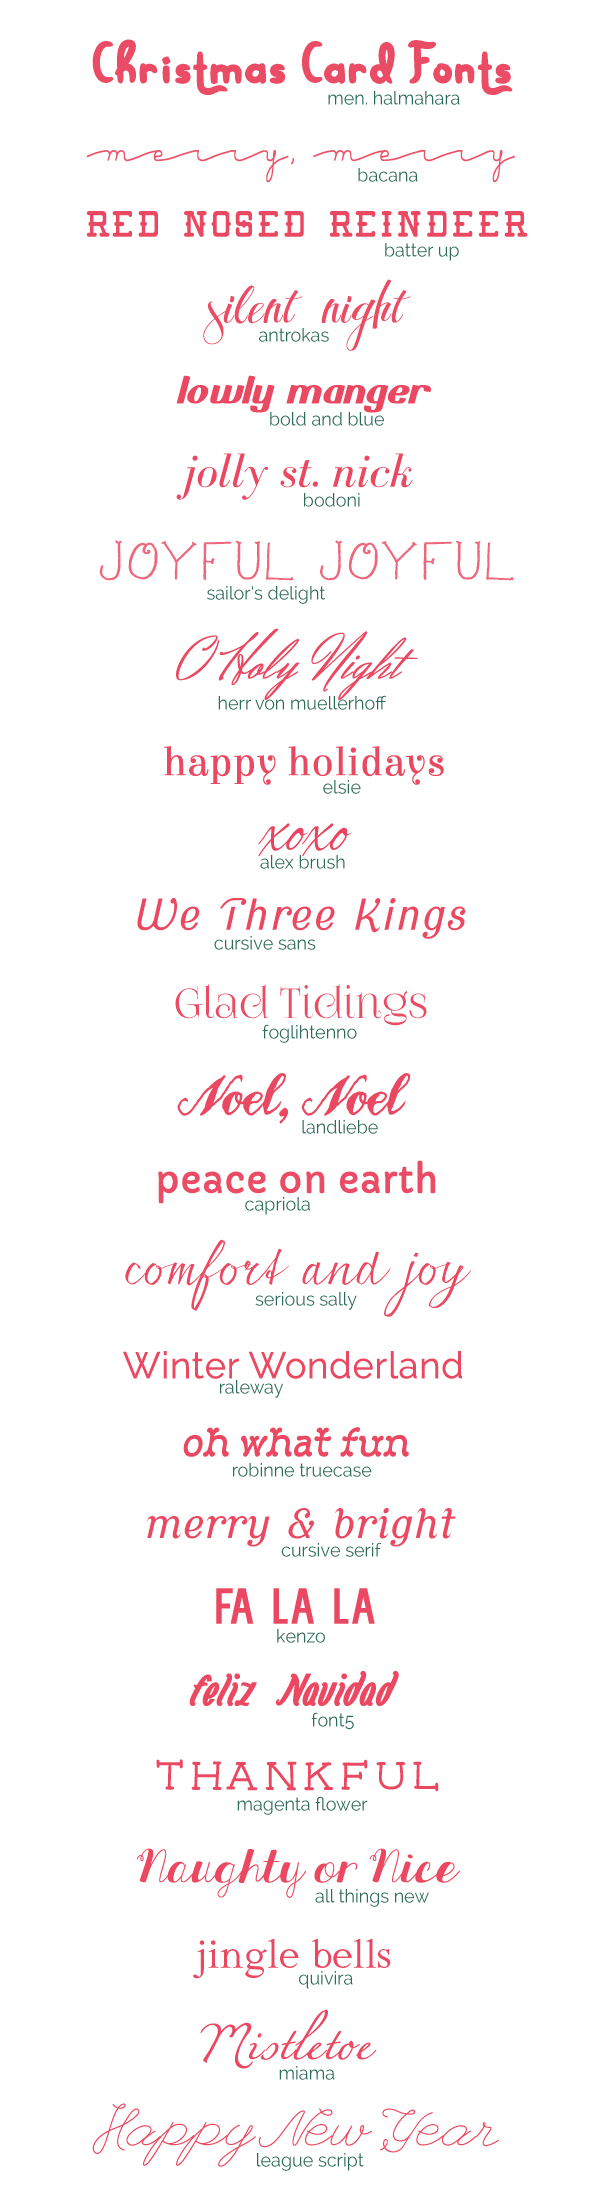 25 free christmas card fonts - Christmas Fonts Free